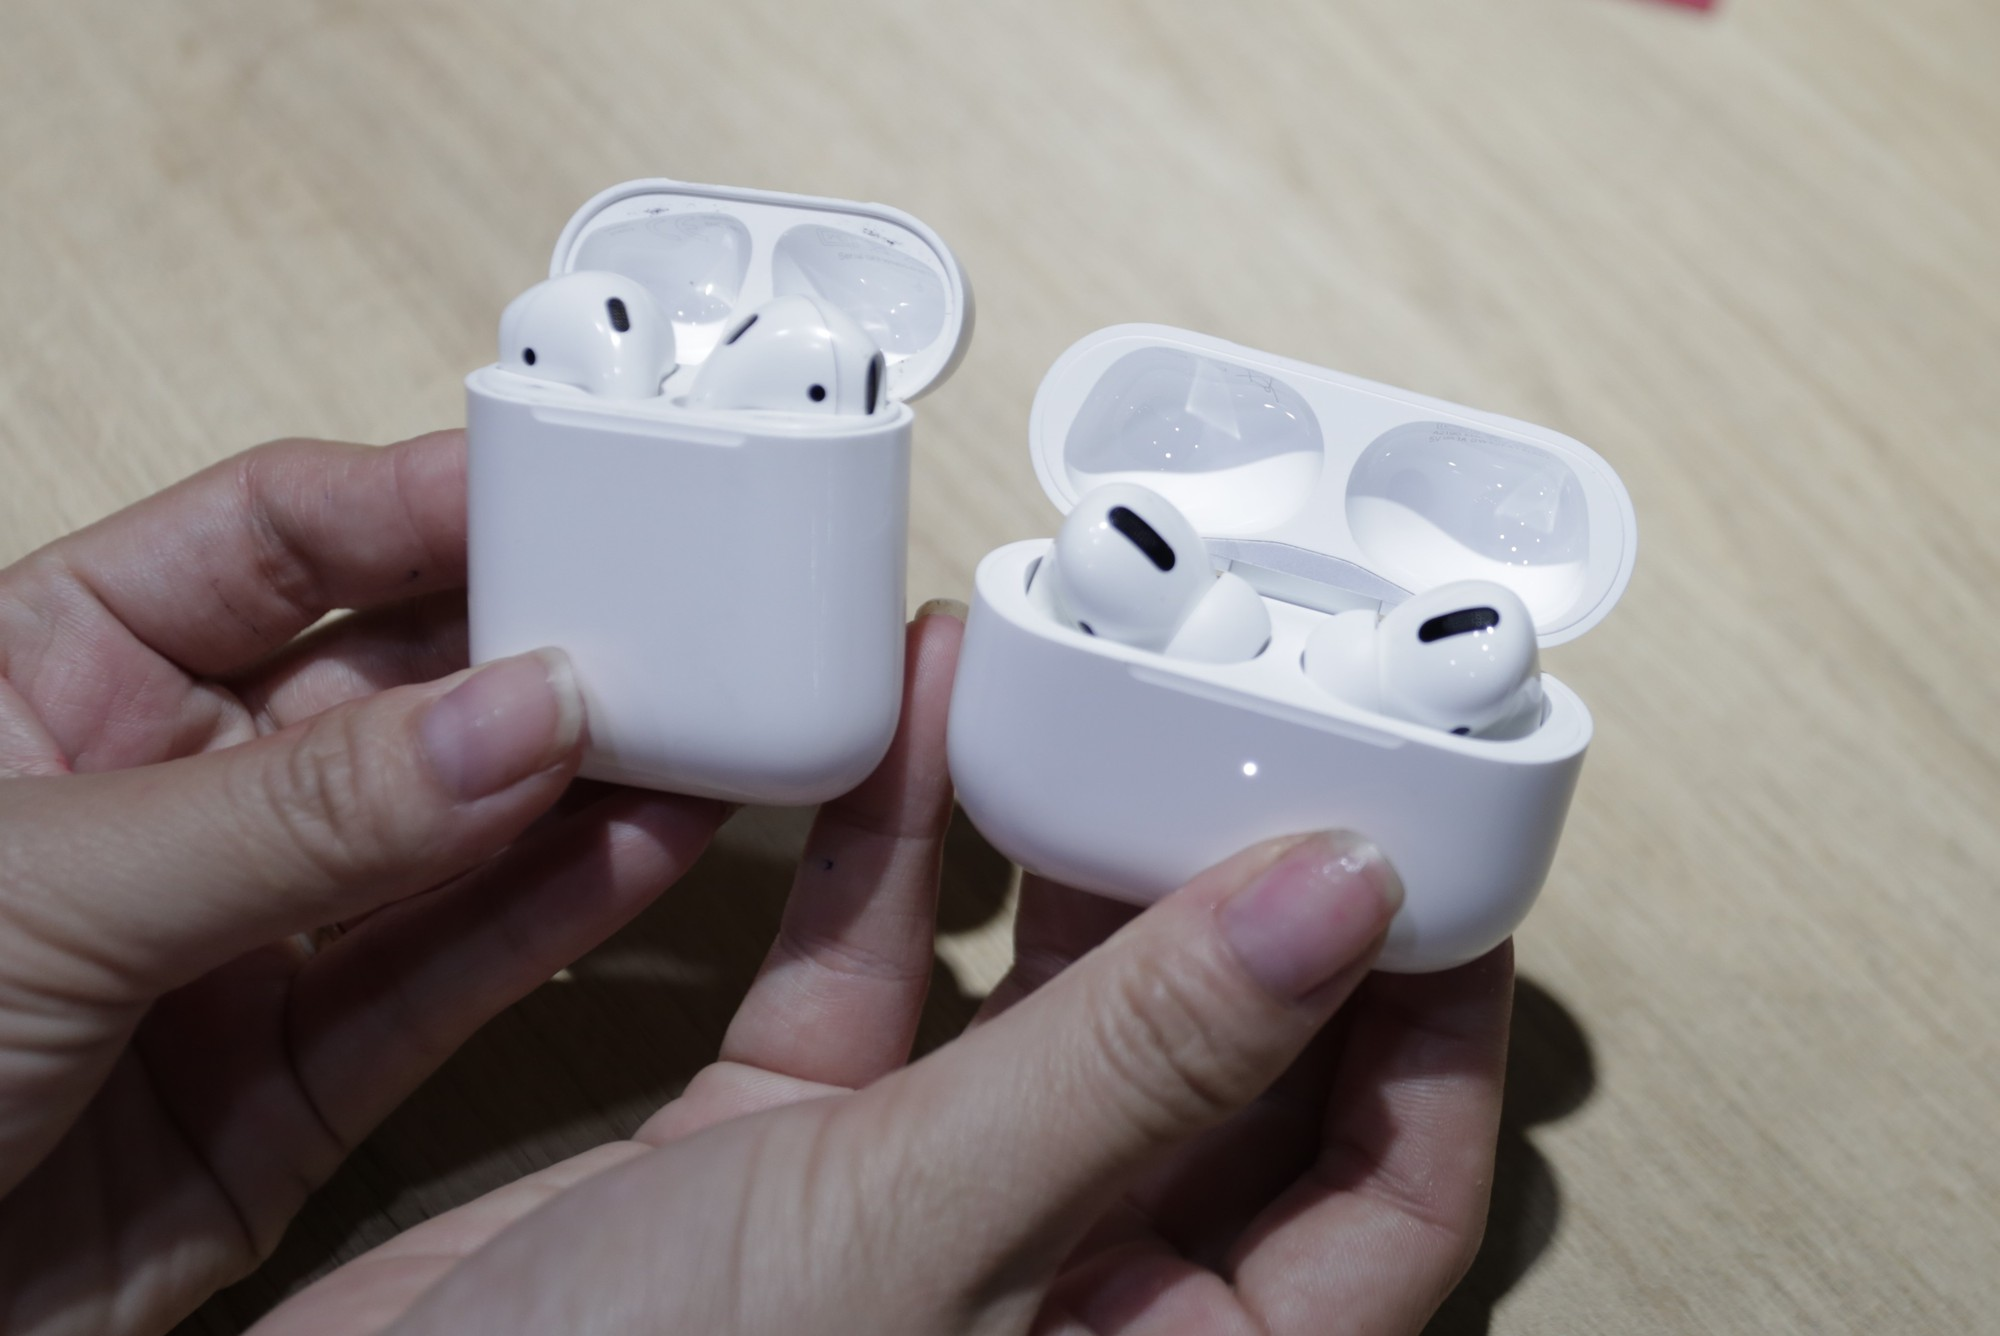 thong-tin-hinh-anh-gia-ca-airpods-pro-truoc-ngay-len-ke-chinh-thuc-cung-iphone-11-3